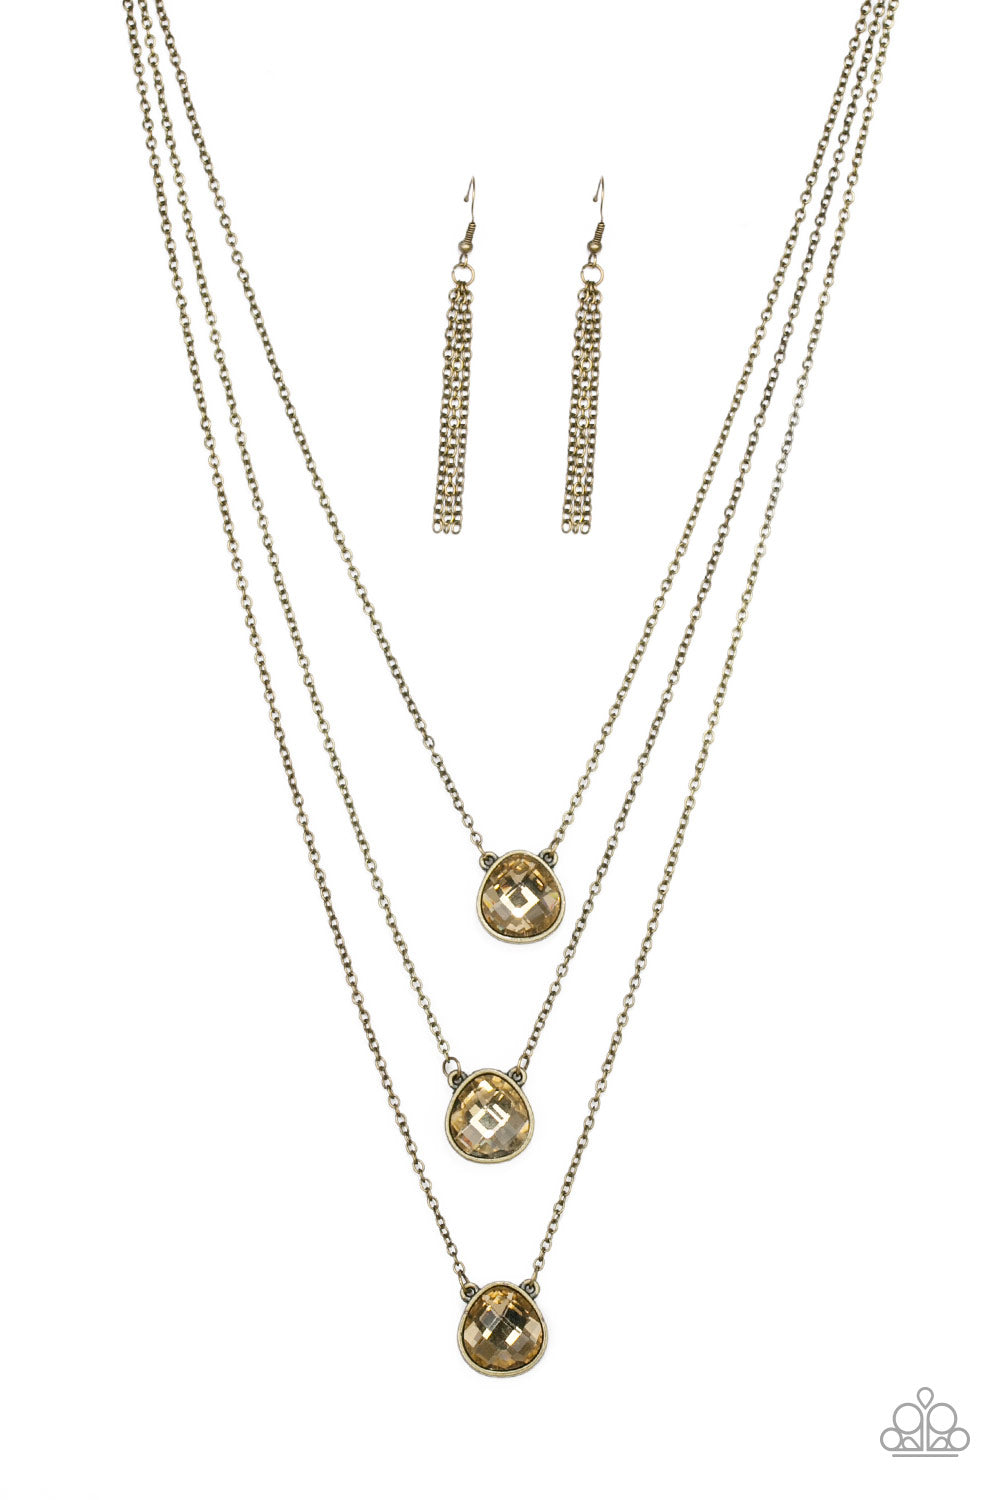 five-dollar-jewelry-once-in-a-millionaire-brass-necklace-paparazzi-accessories